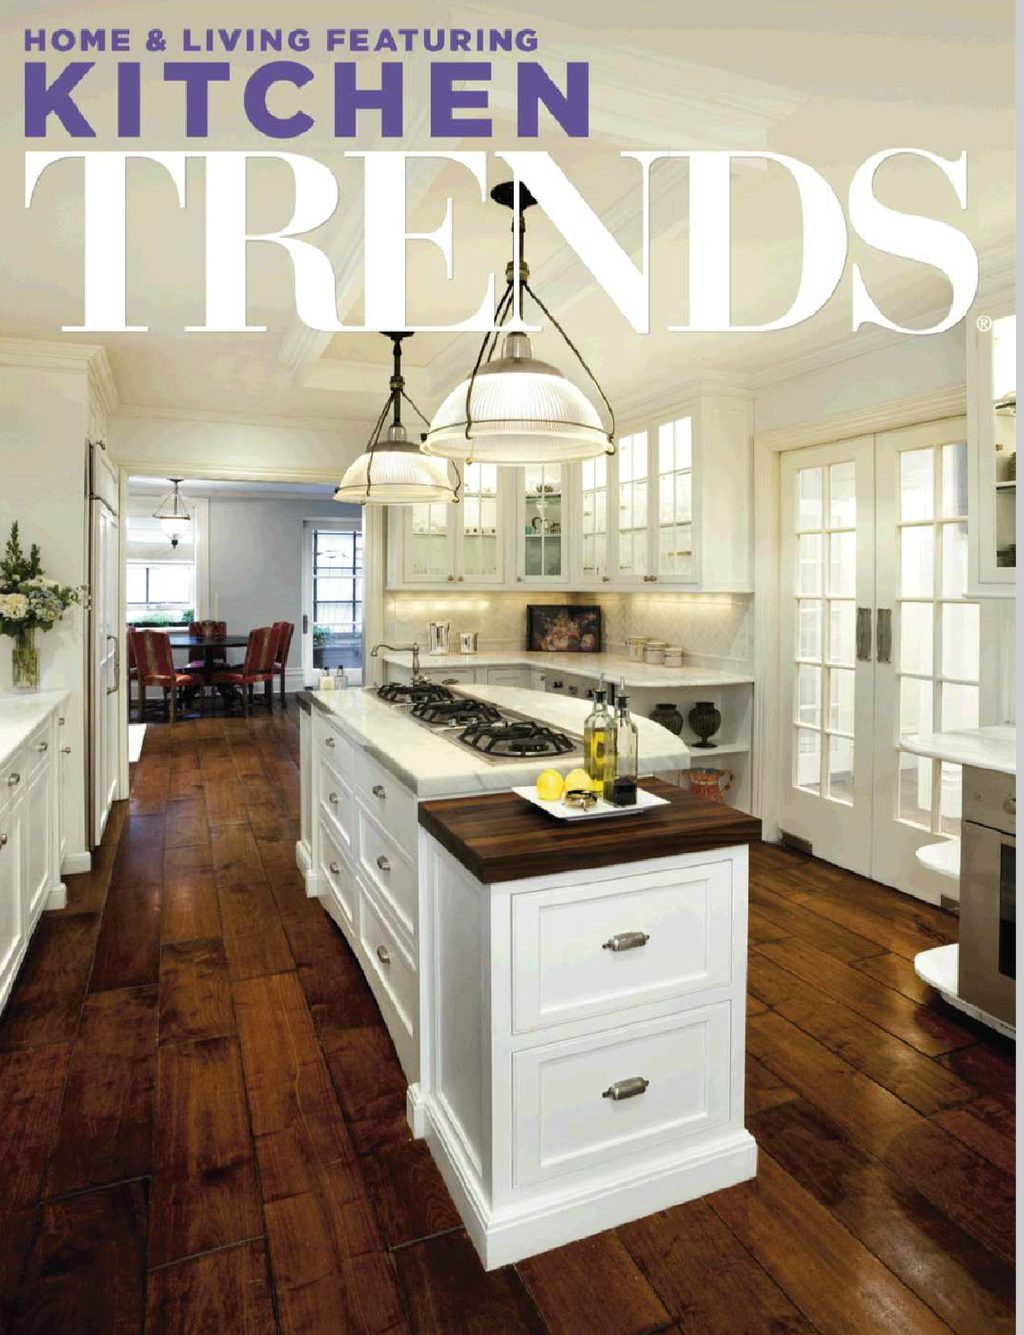 INDEPENDENT KITCHEN AND BATH, nyc DESIGNER, custom CABINETS and ...